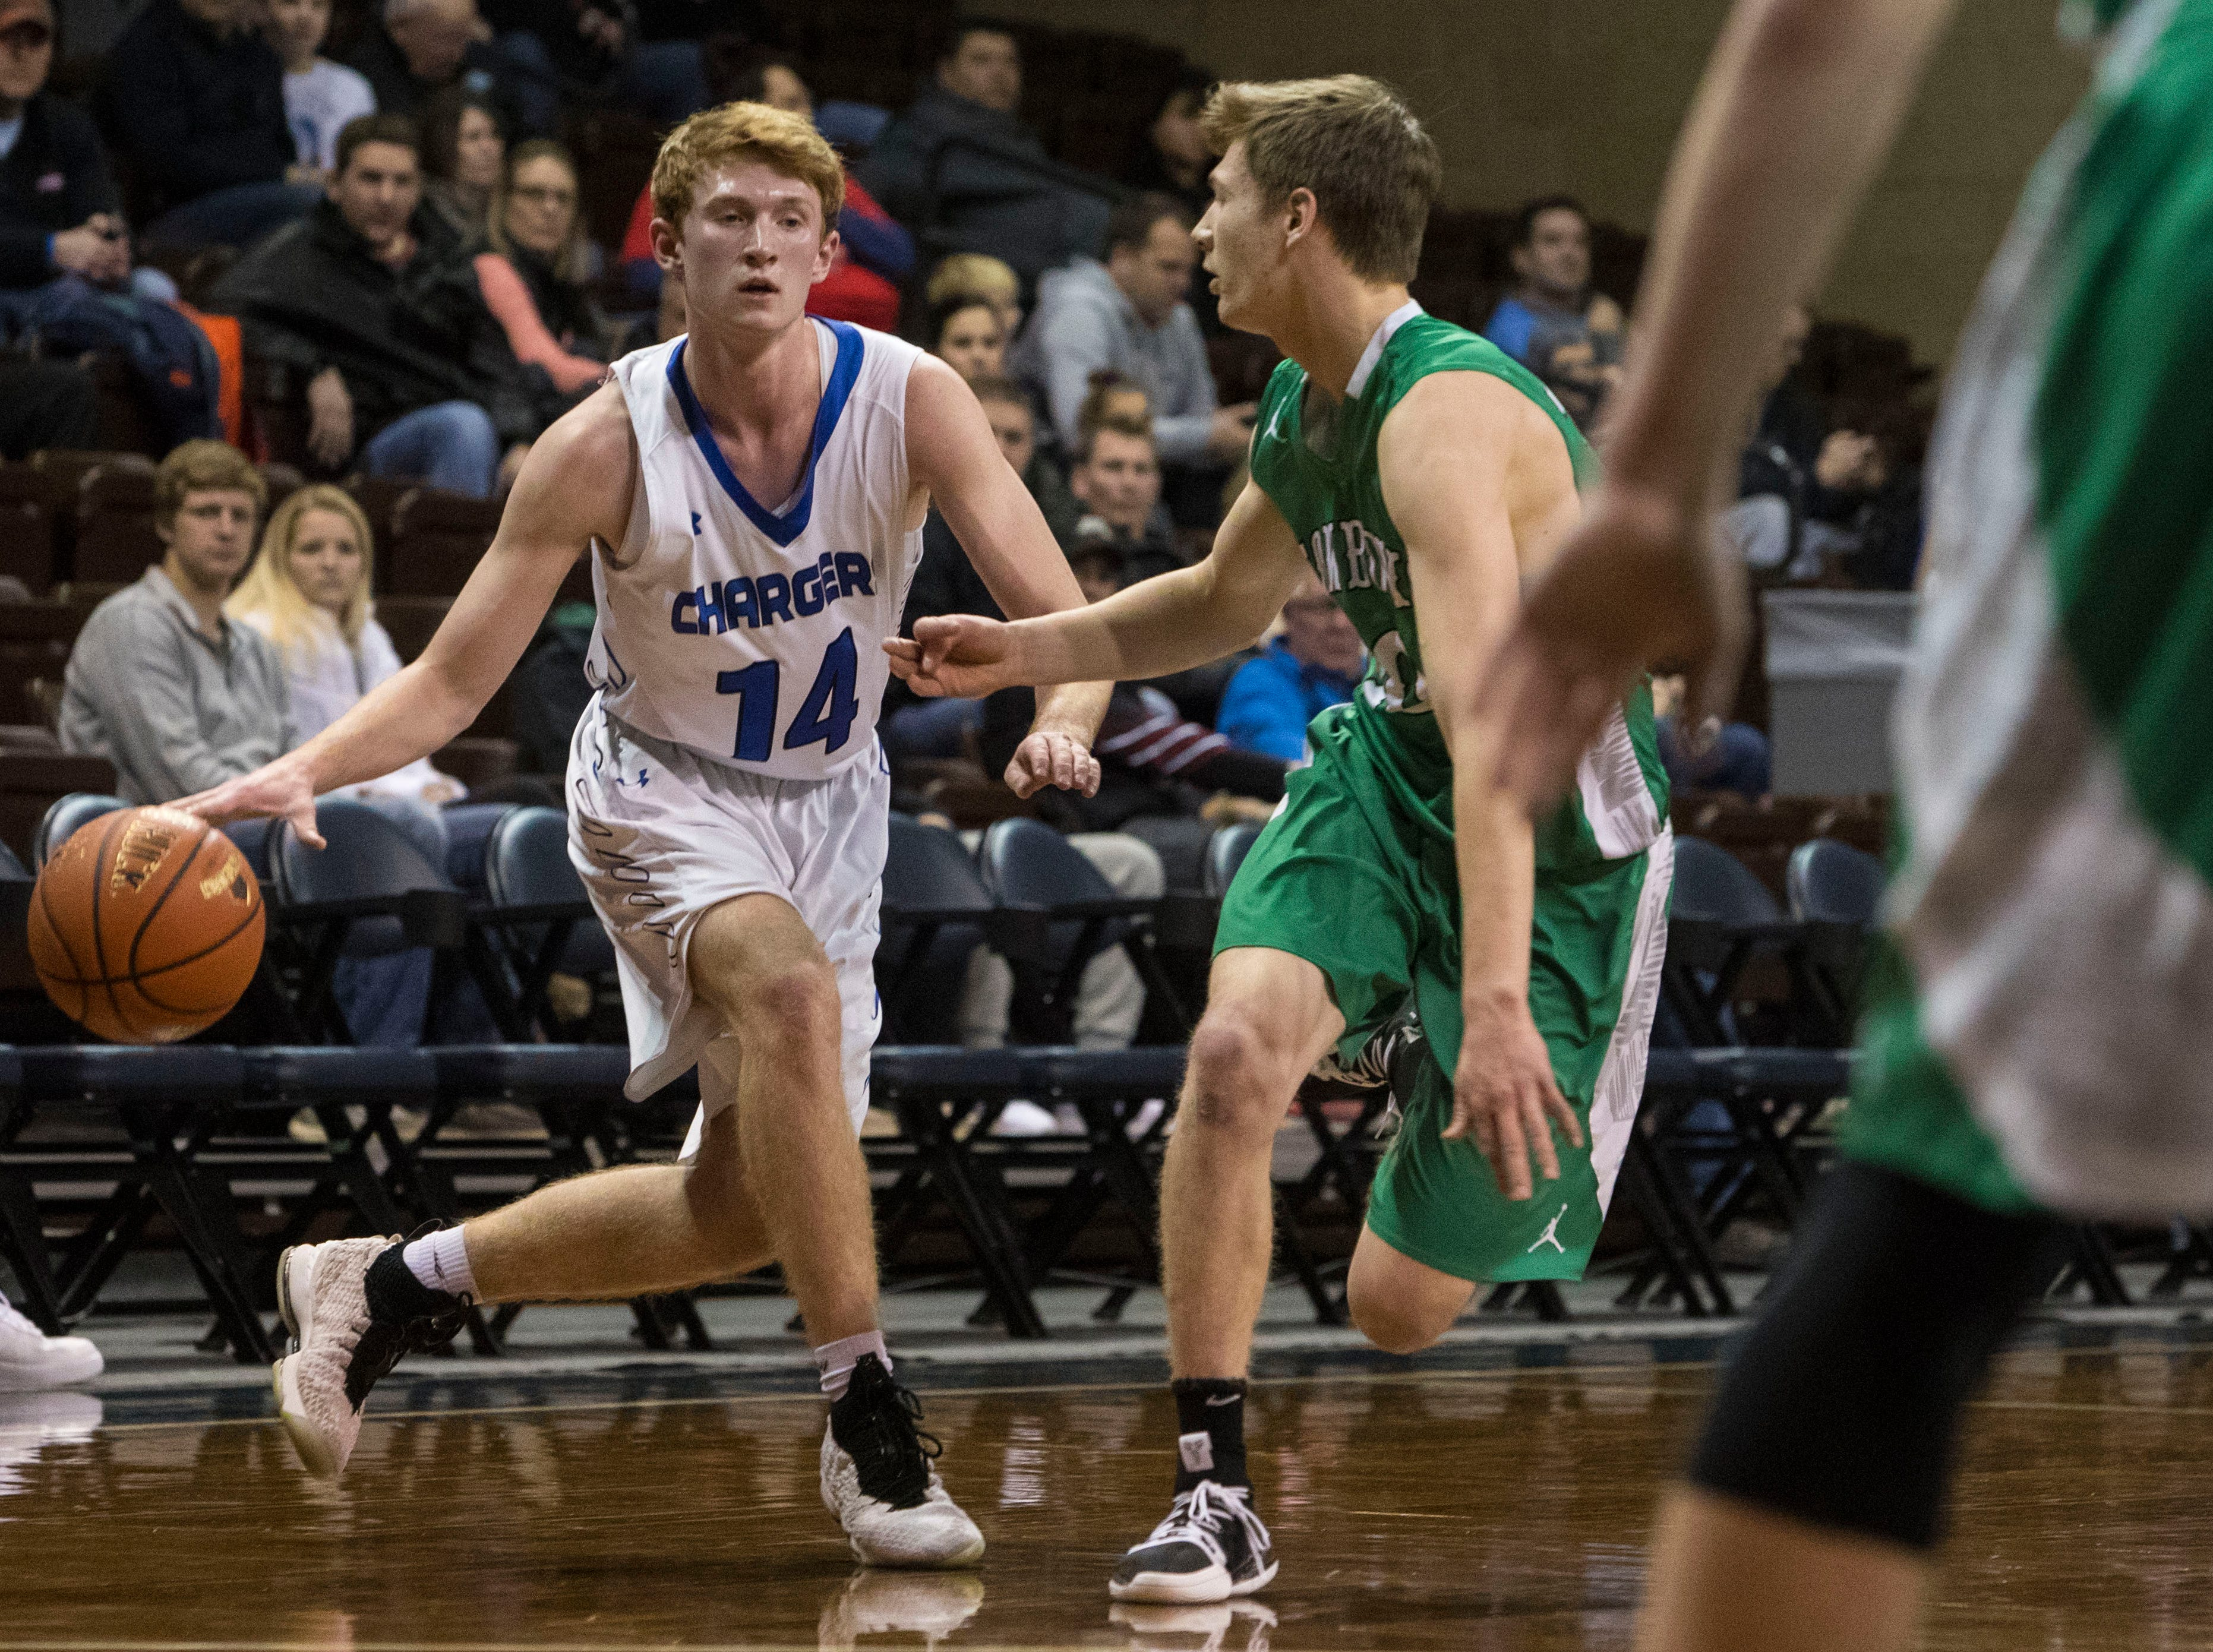 Sioux Falls Christian's Gavin Schipper (14) dribbles past Breckenridge player at the Hoop City Classic at the Sanford Pentagon in Sioux Falls, S.D., Saturday, Dec. 29, 2018.